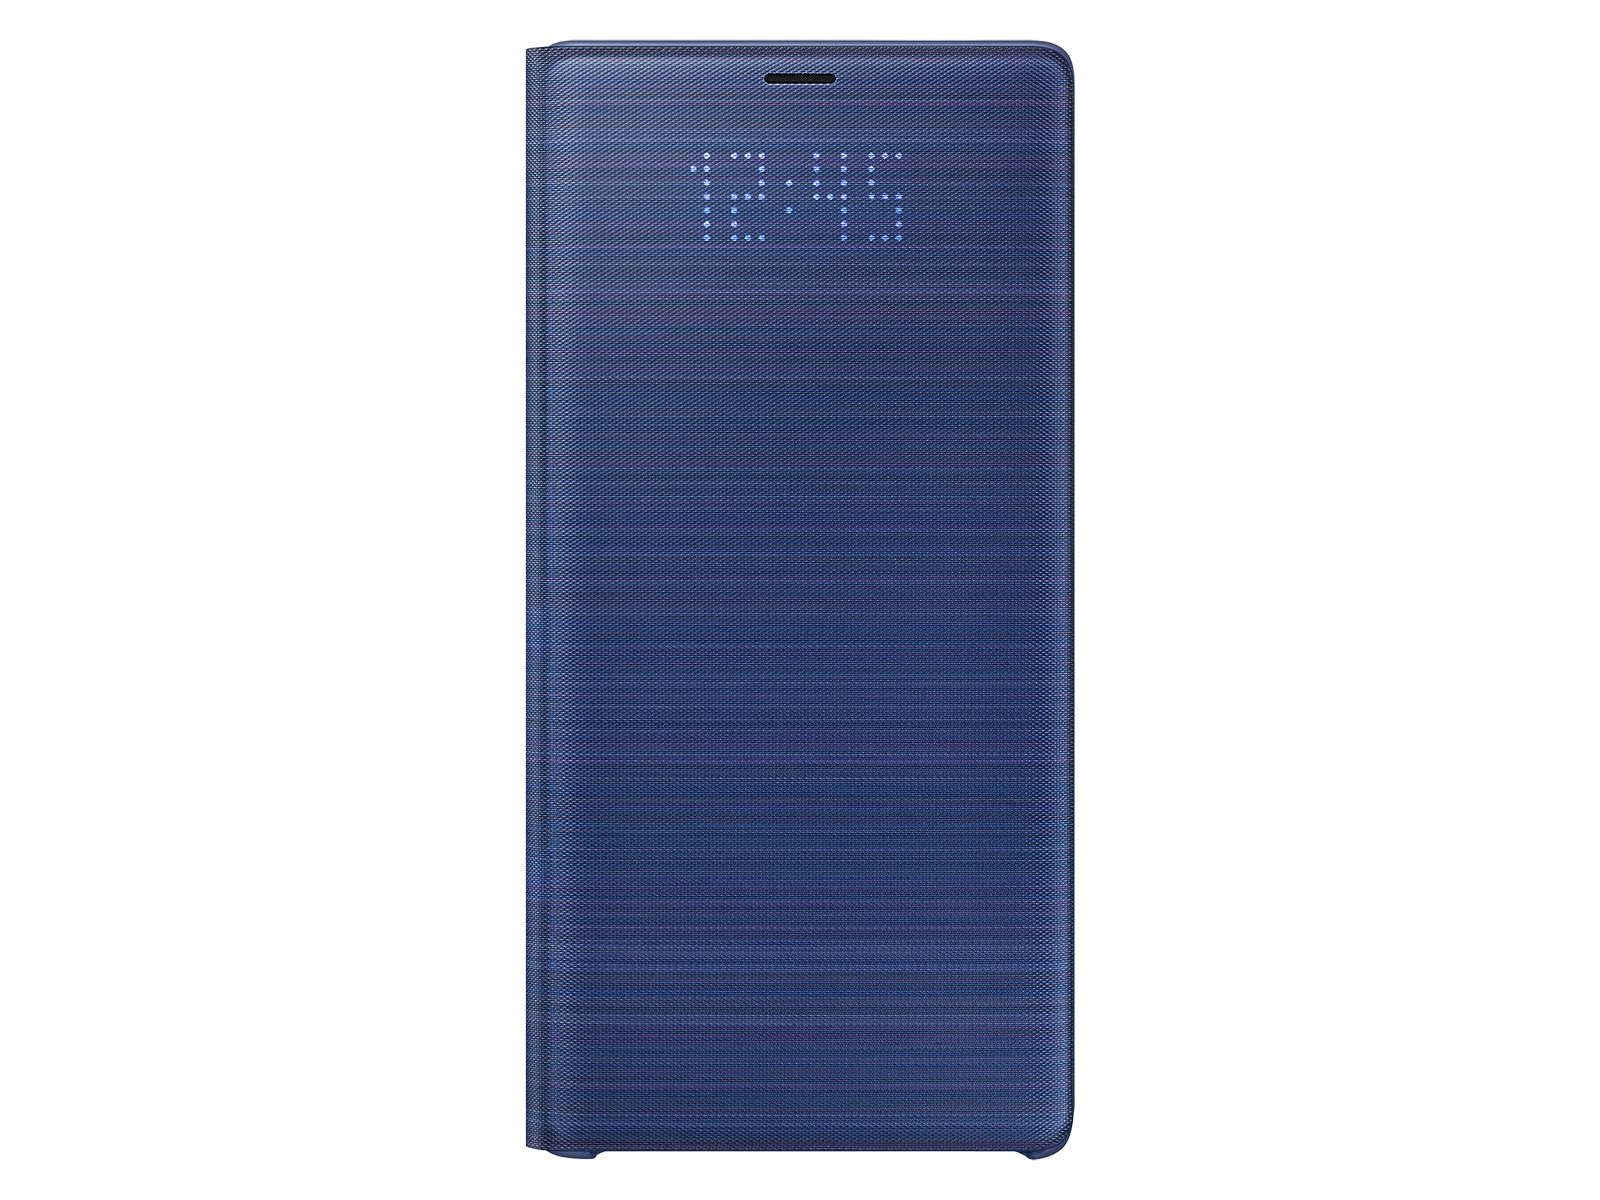 Thumbnail image of Galaxy Note9 LED Wallet Cover, Ocean Blue